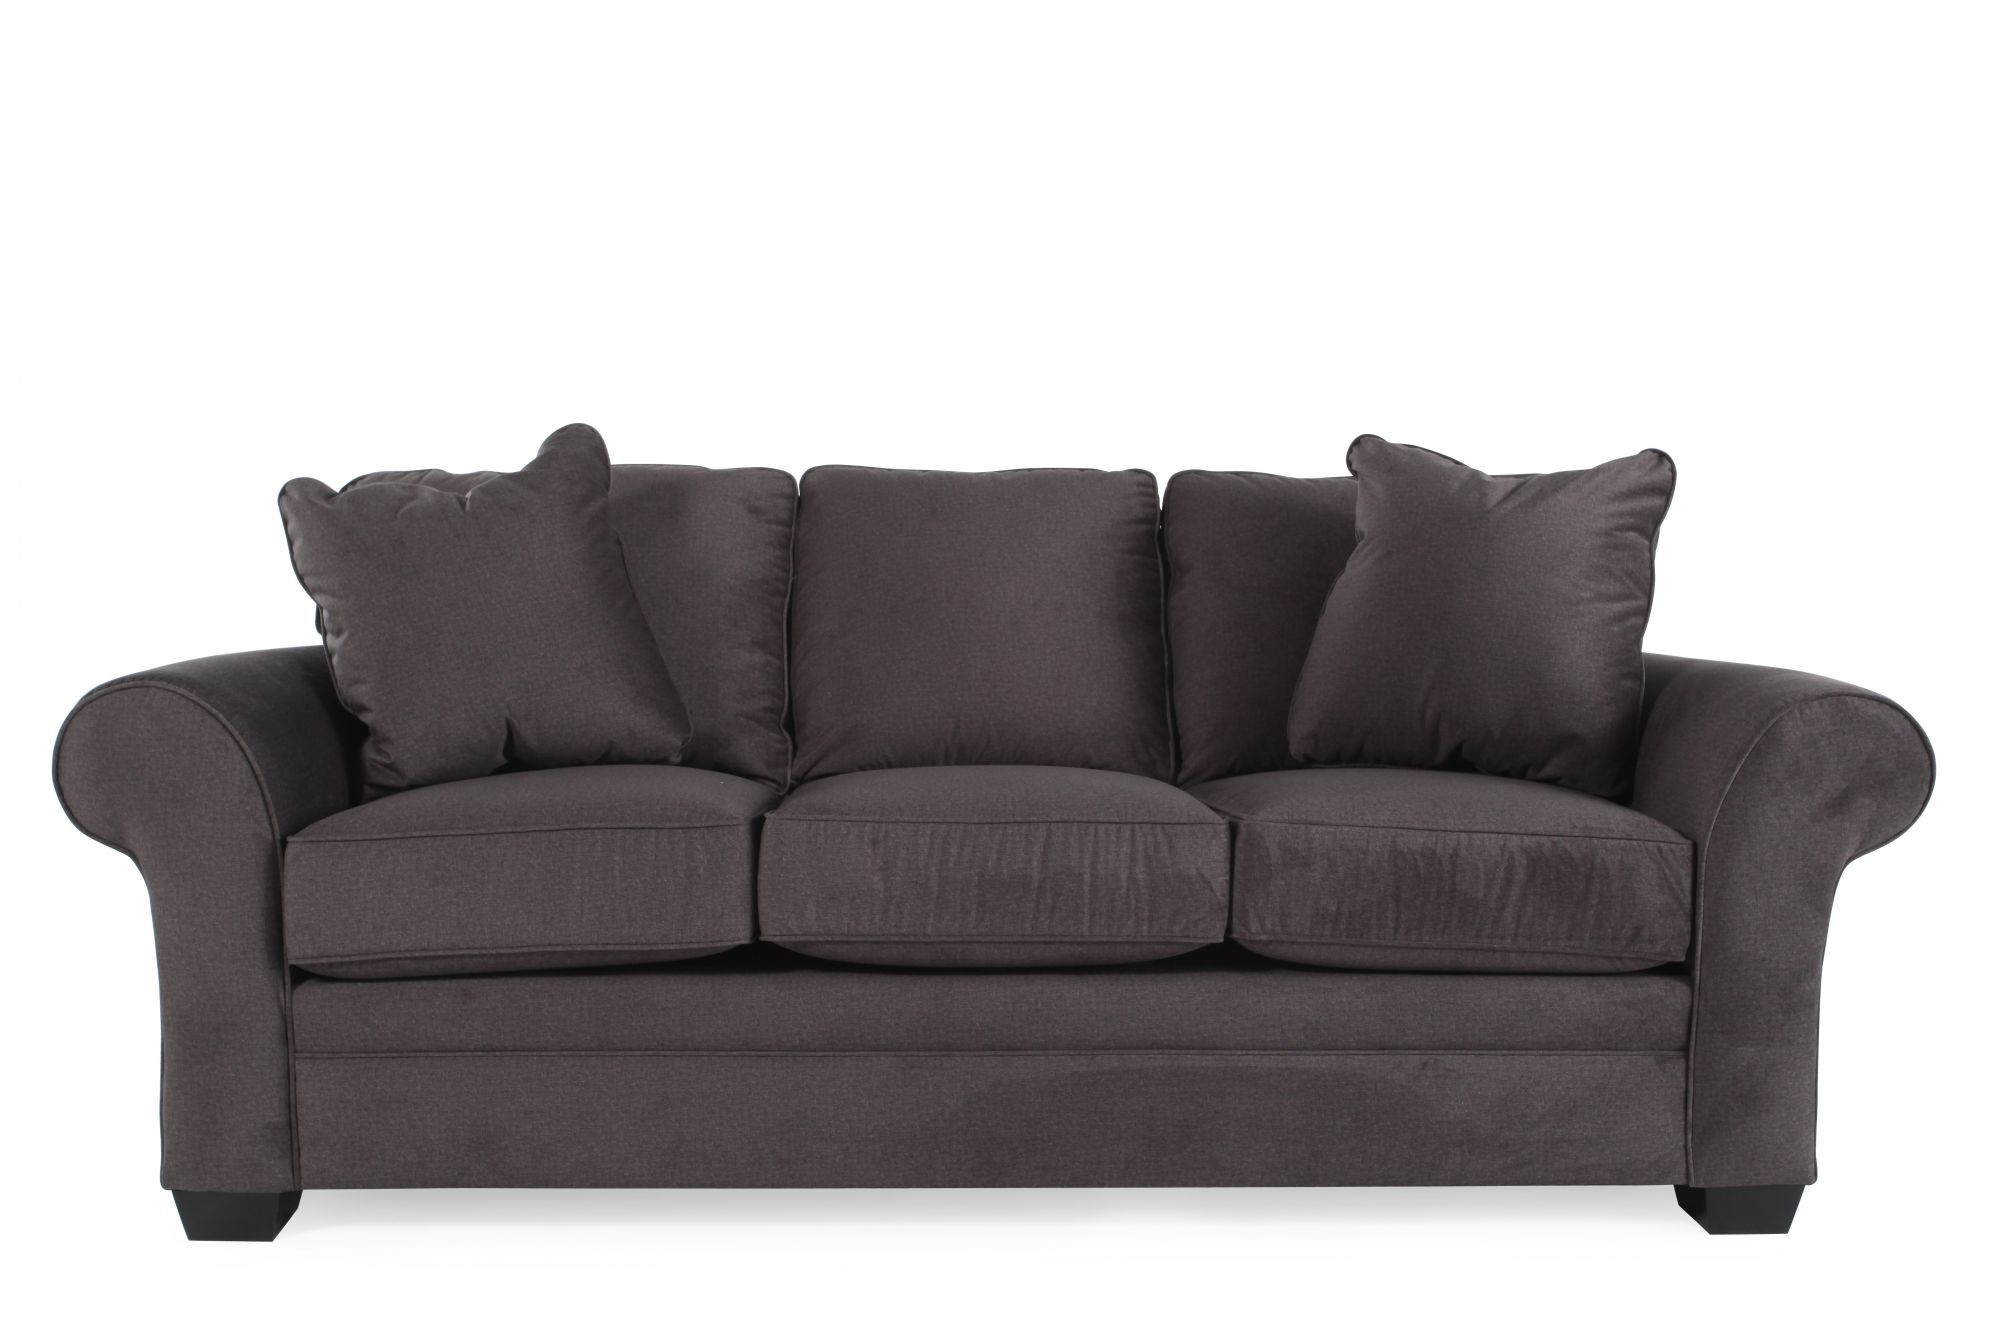 Broyhill Zachary Sofa  Mathis Brothers Furniture